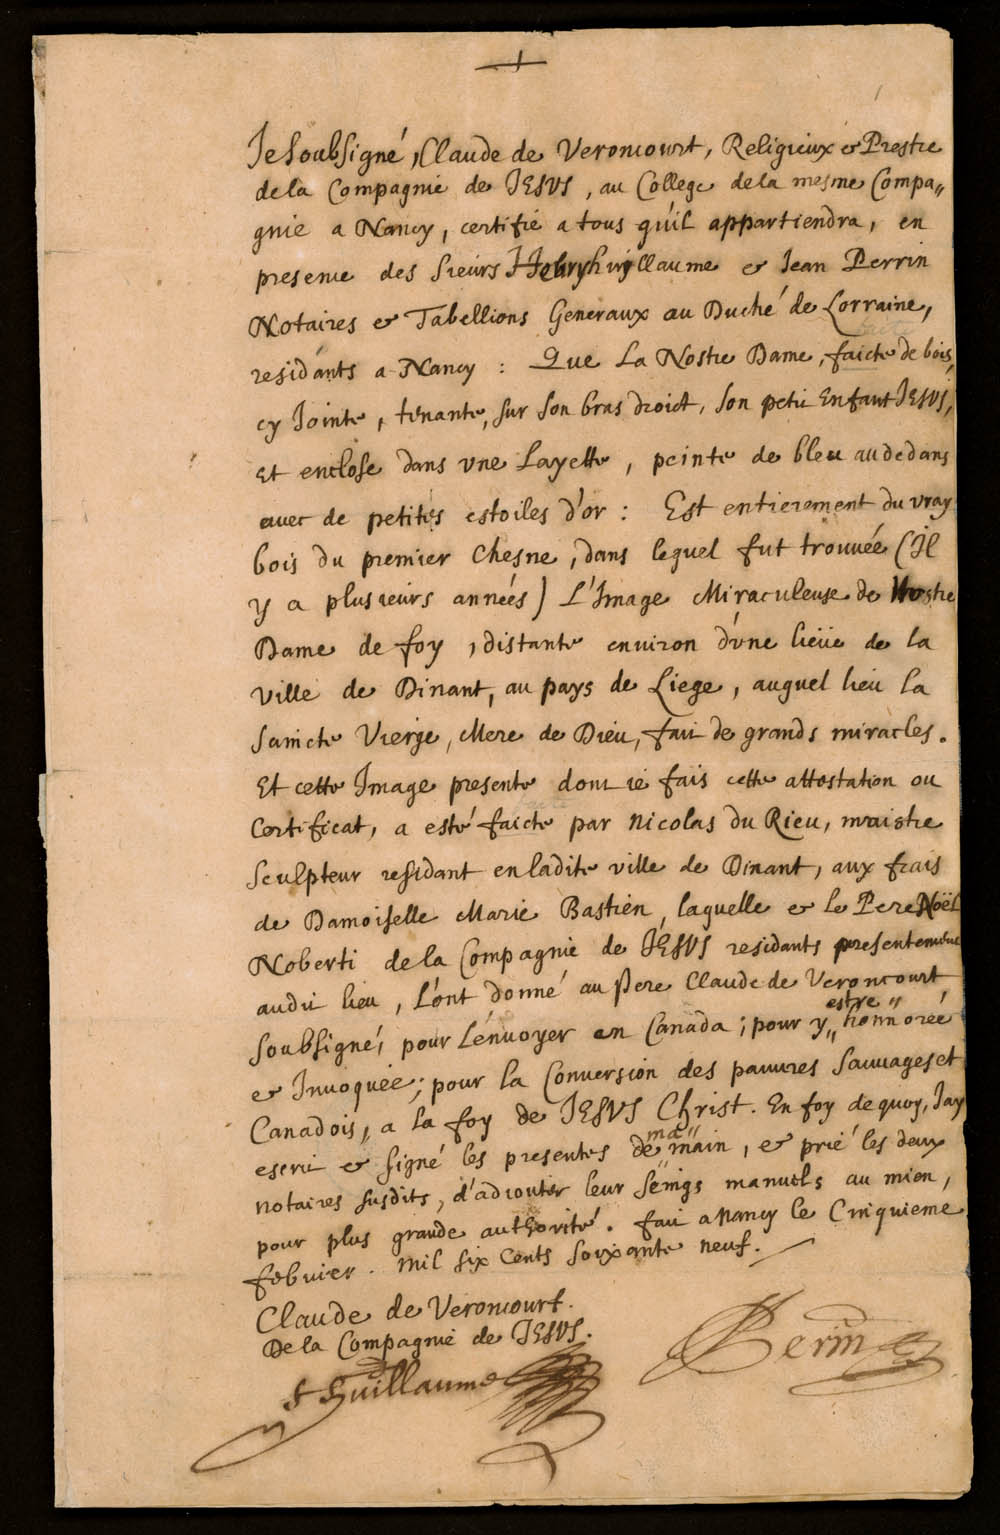 Declaration of the Jesuit Claude de Veroncourt concerning the statue of the Holy Virgin in the chapel of the Huron village near Québec, February 5, 1669, CA ANC MG18-E18